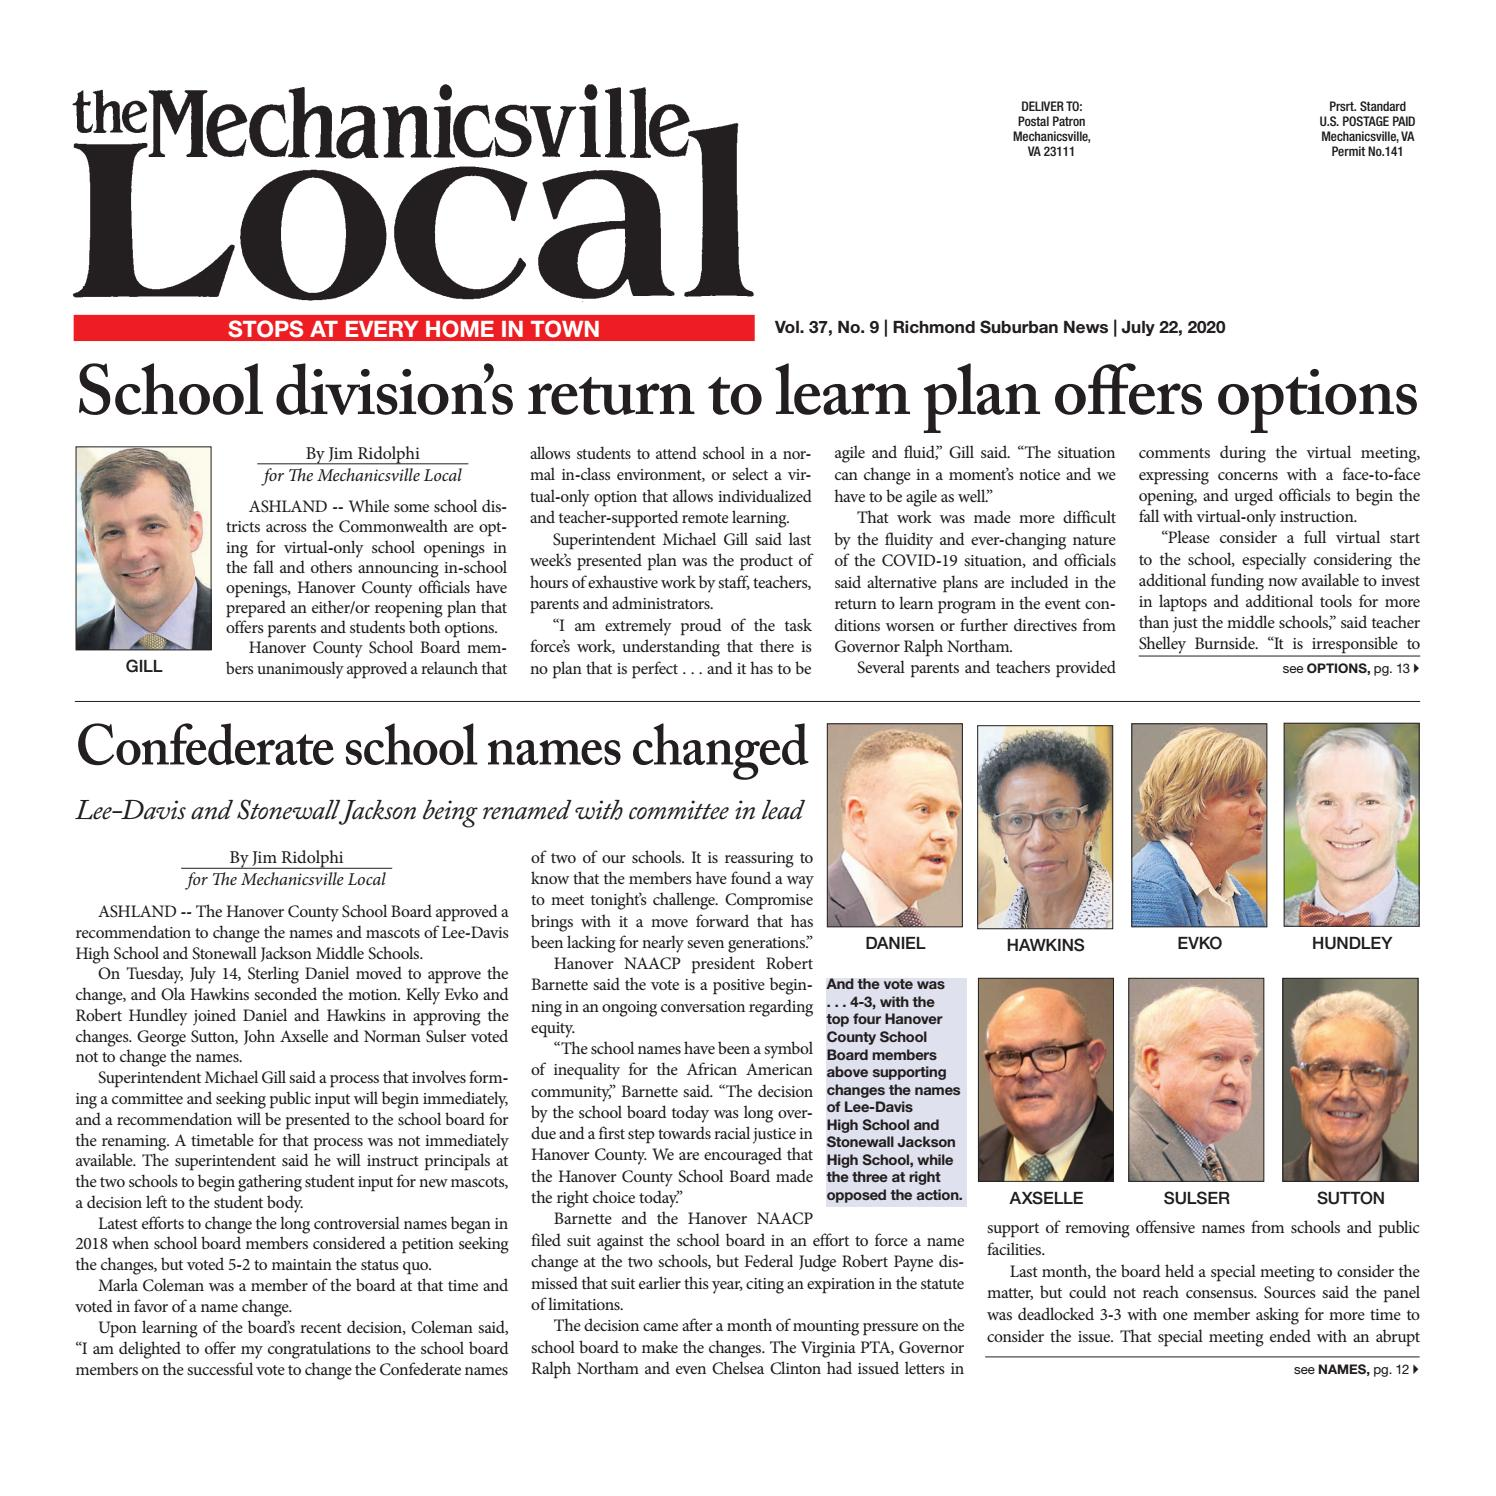 The Mechanicsville Local 07 22 2020 By The Mechanicsville Local Issuu